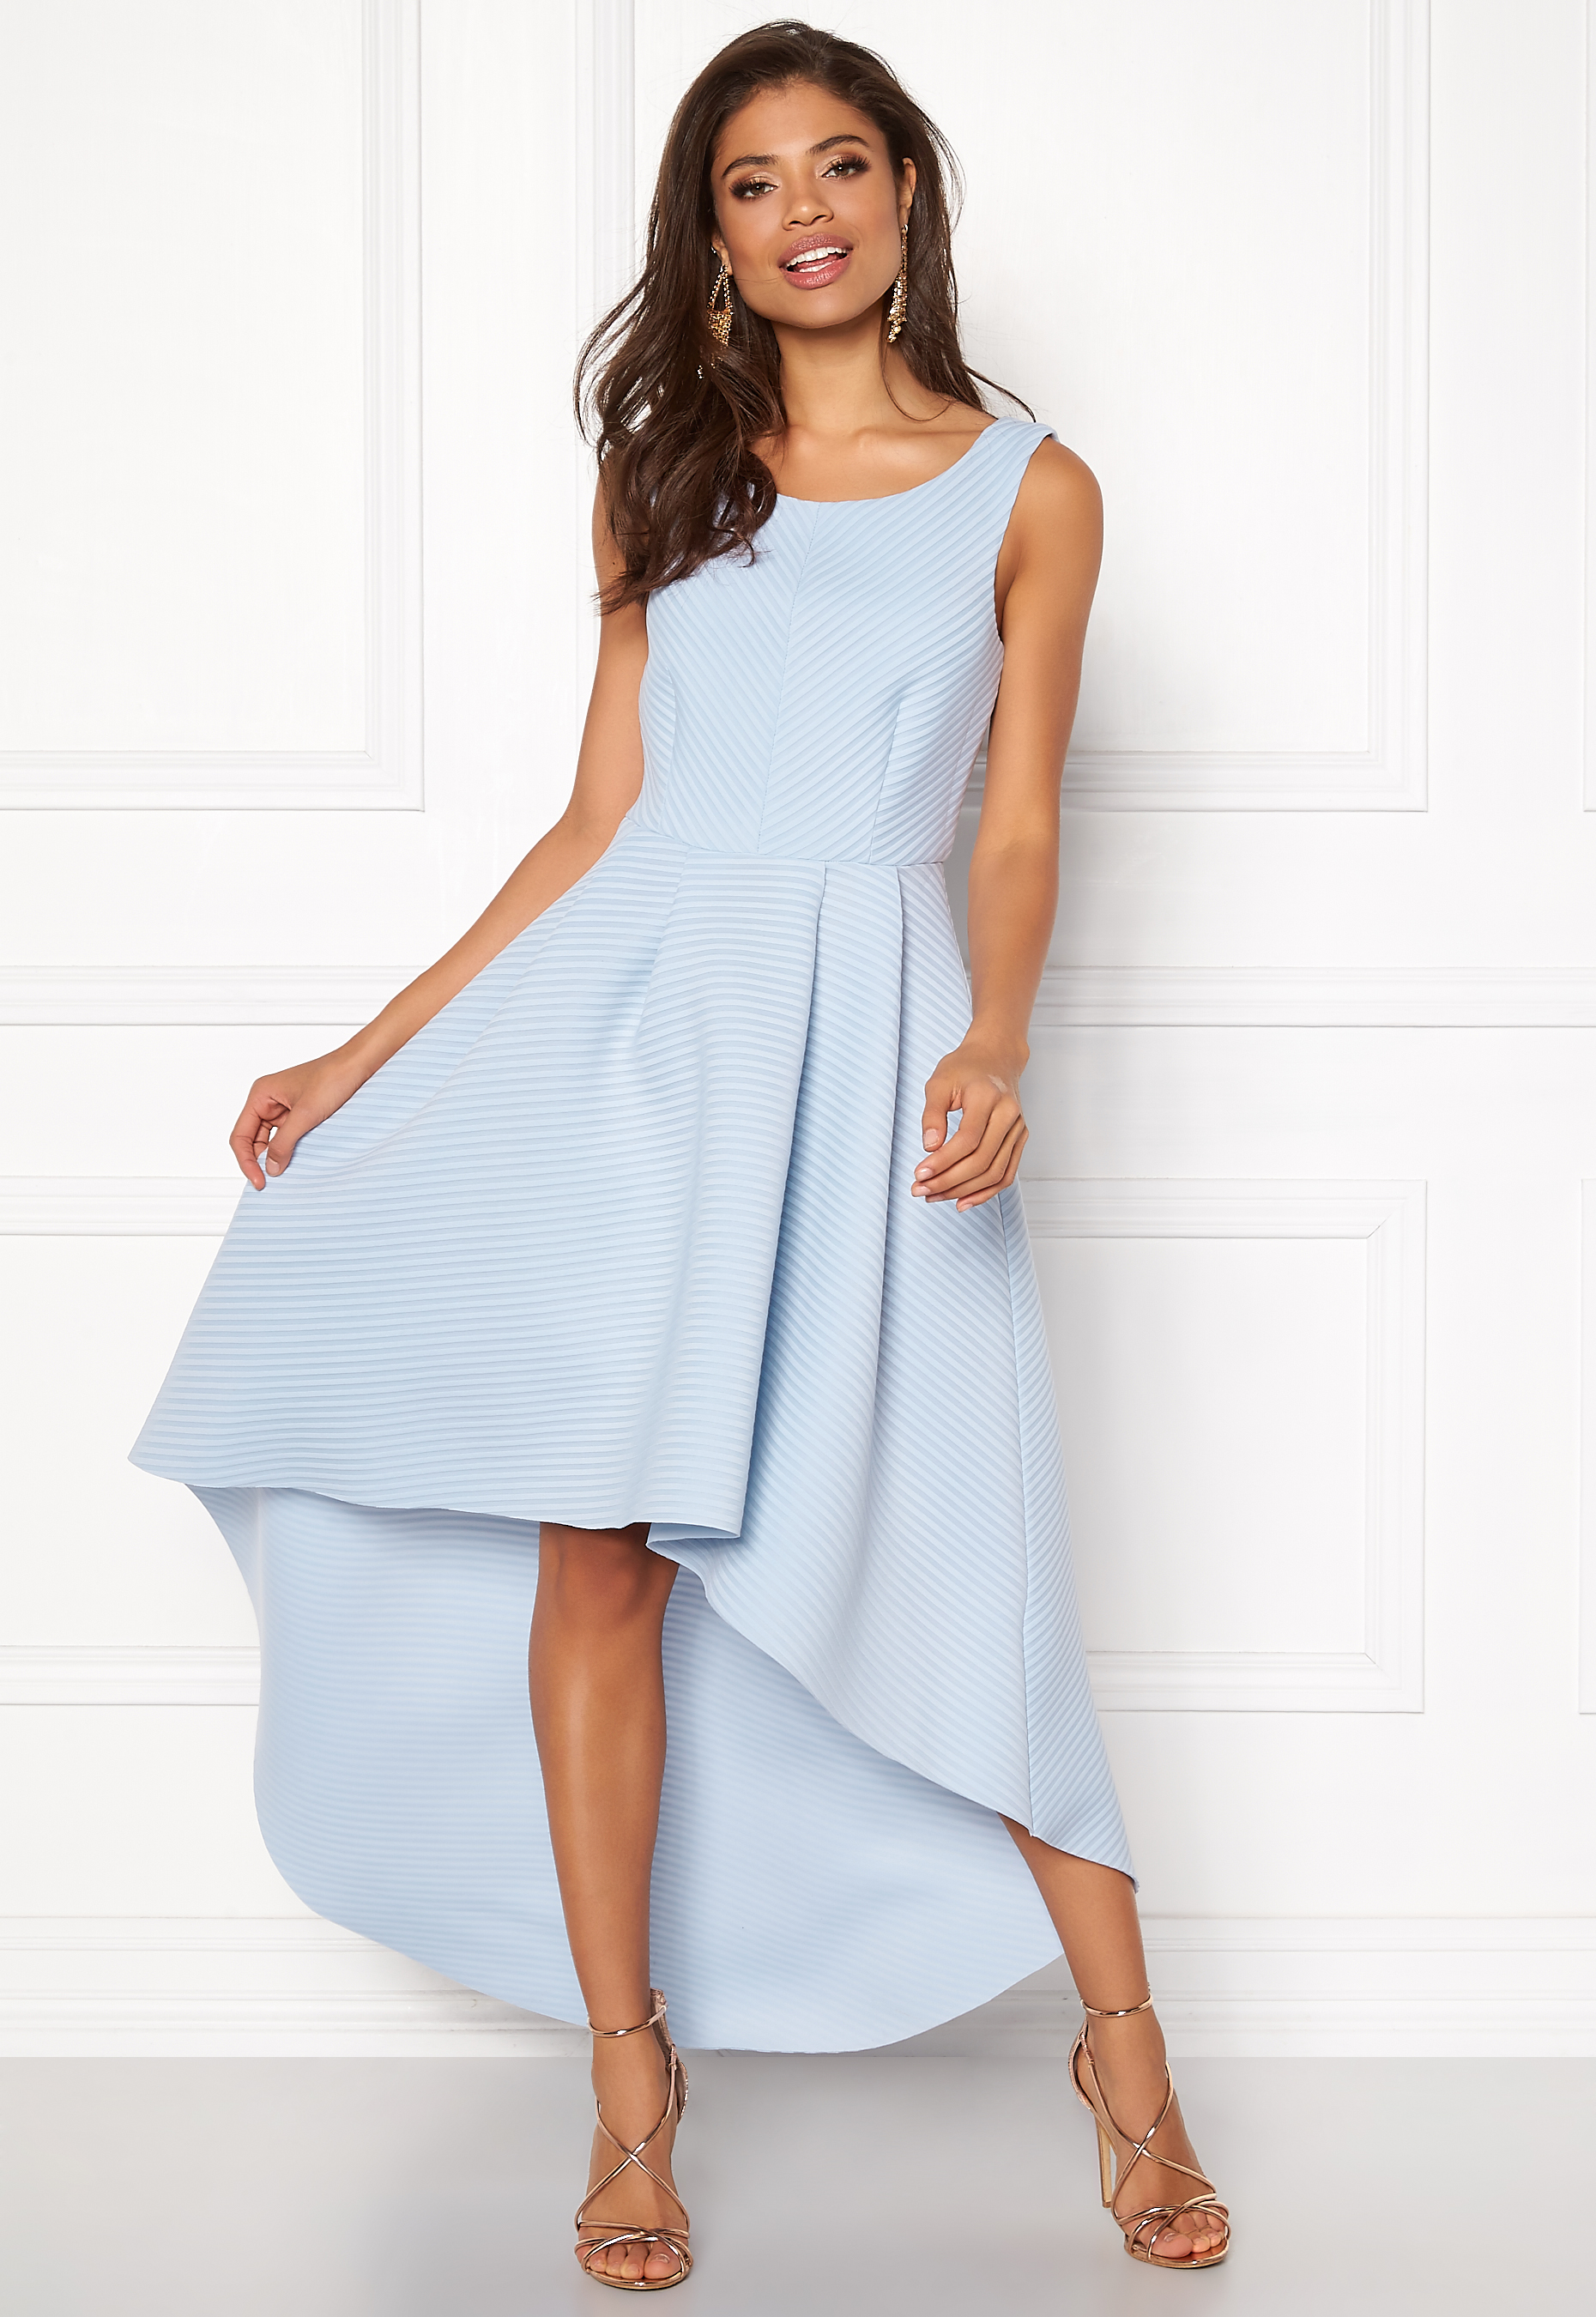 Light Goddiva Bubbleroom Dress Sleeveless Blue Low High nIq6Ip